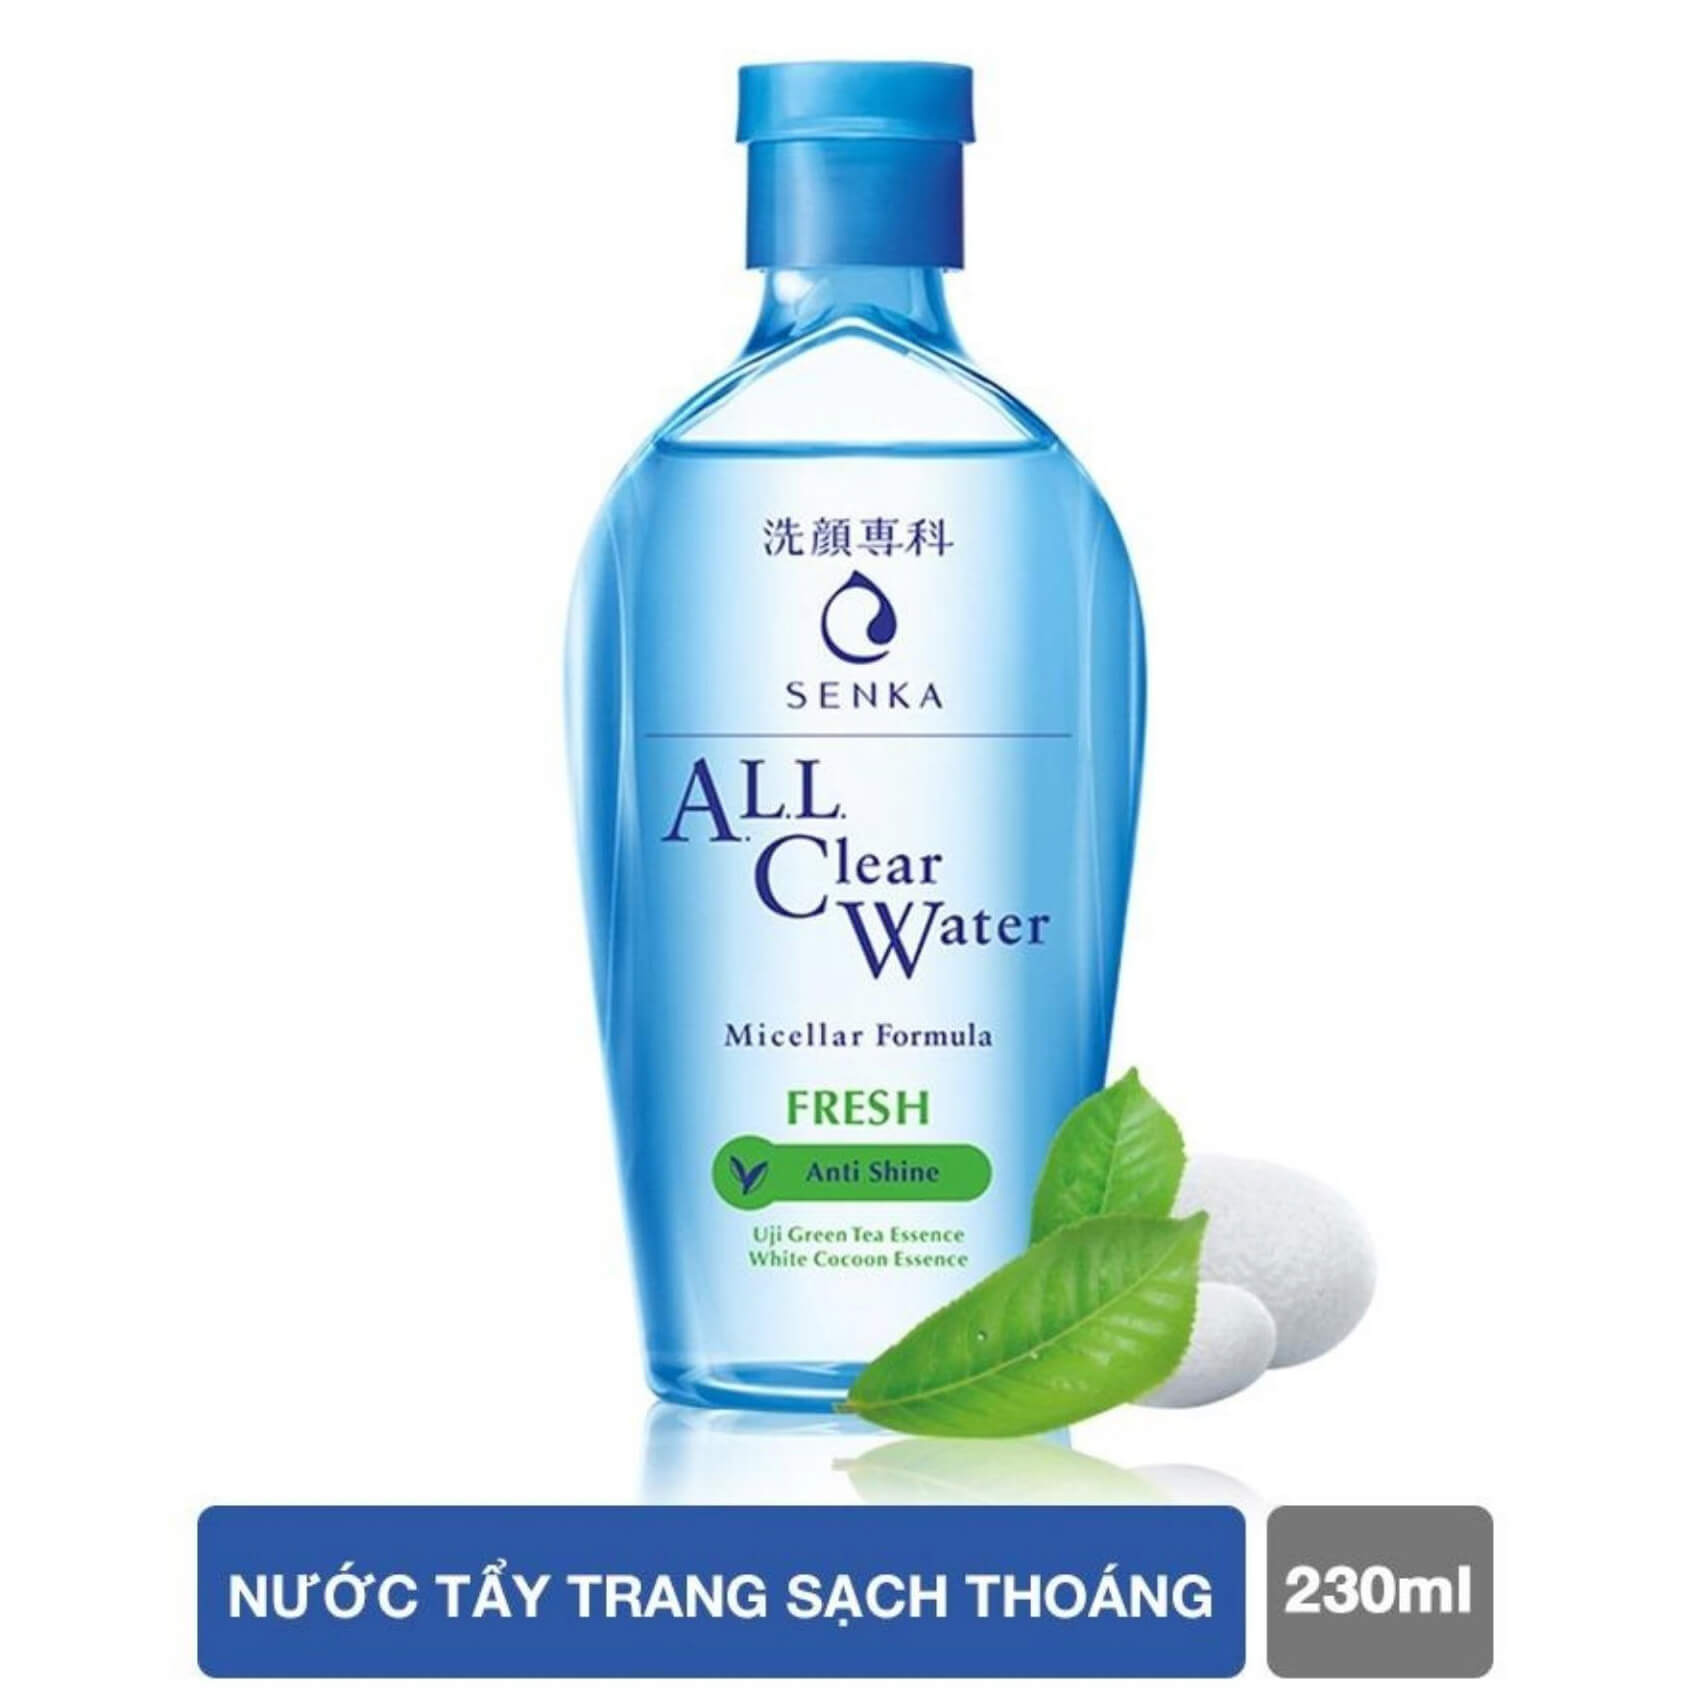 nuoc-tay-trang-micellar-chong-bong-dau-senka-all-clear-water-fresh-230ml